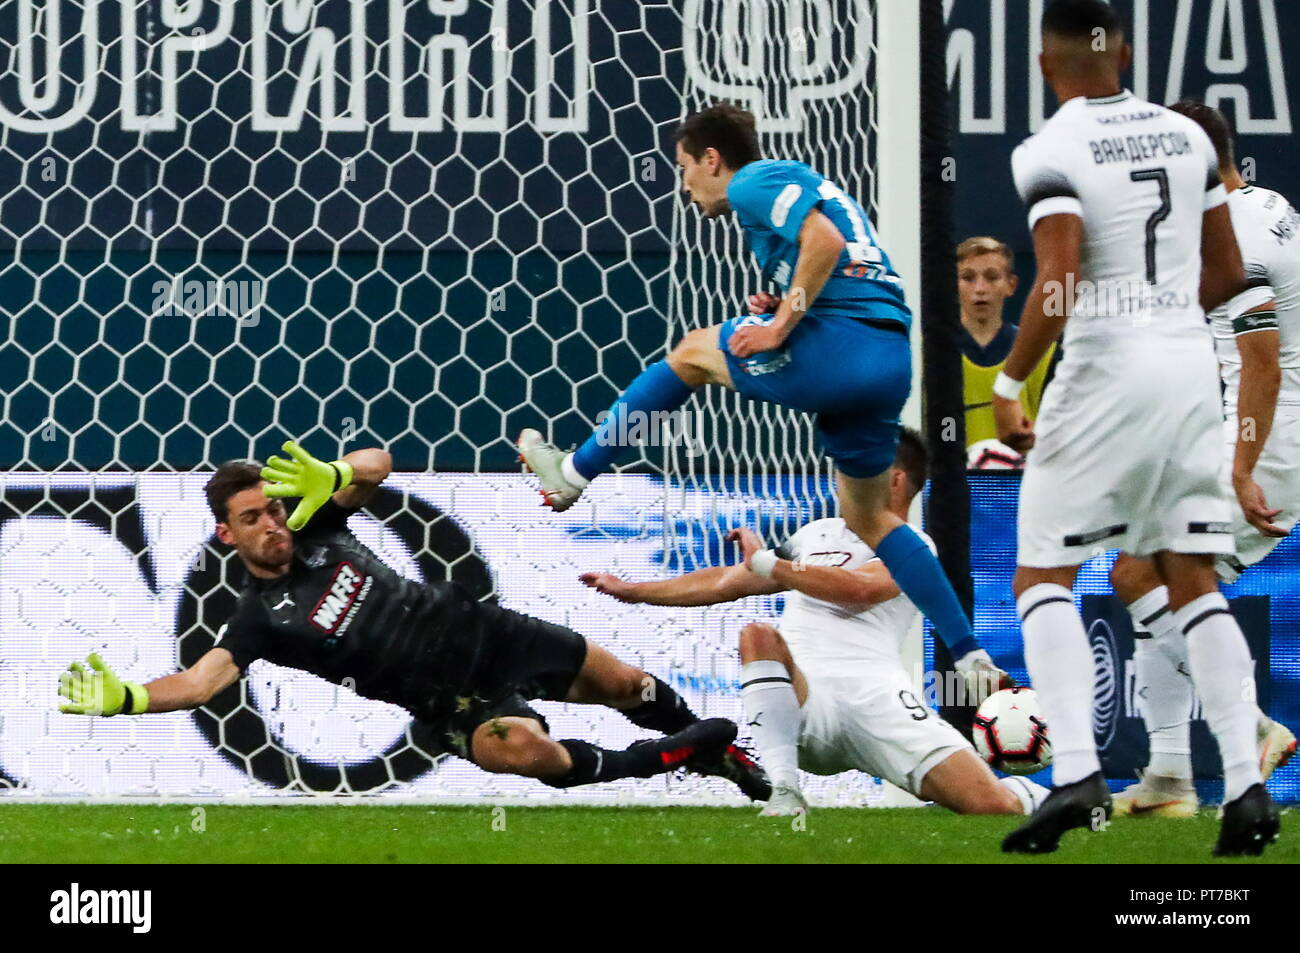 St Petersburg, Russia. 07th Oct, 2018. MOSCOW, RUSSIA - OCTOBER 7, 2018: FC Krasnodar goalkeeper Stanislav Kritsyuk (L) supported by Wanderson (R front), Sergei Petrov (R back) defends against Zenit St Petersburg's Daler Kuzyayev (C) in their 2018/19 Russian Premier League Round 10 football match at Saint Petersburg Stadium. Alexander Demianchuk/TASS Credit: ITAR-TASS News Agency/Alamy Live News - Stock Image